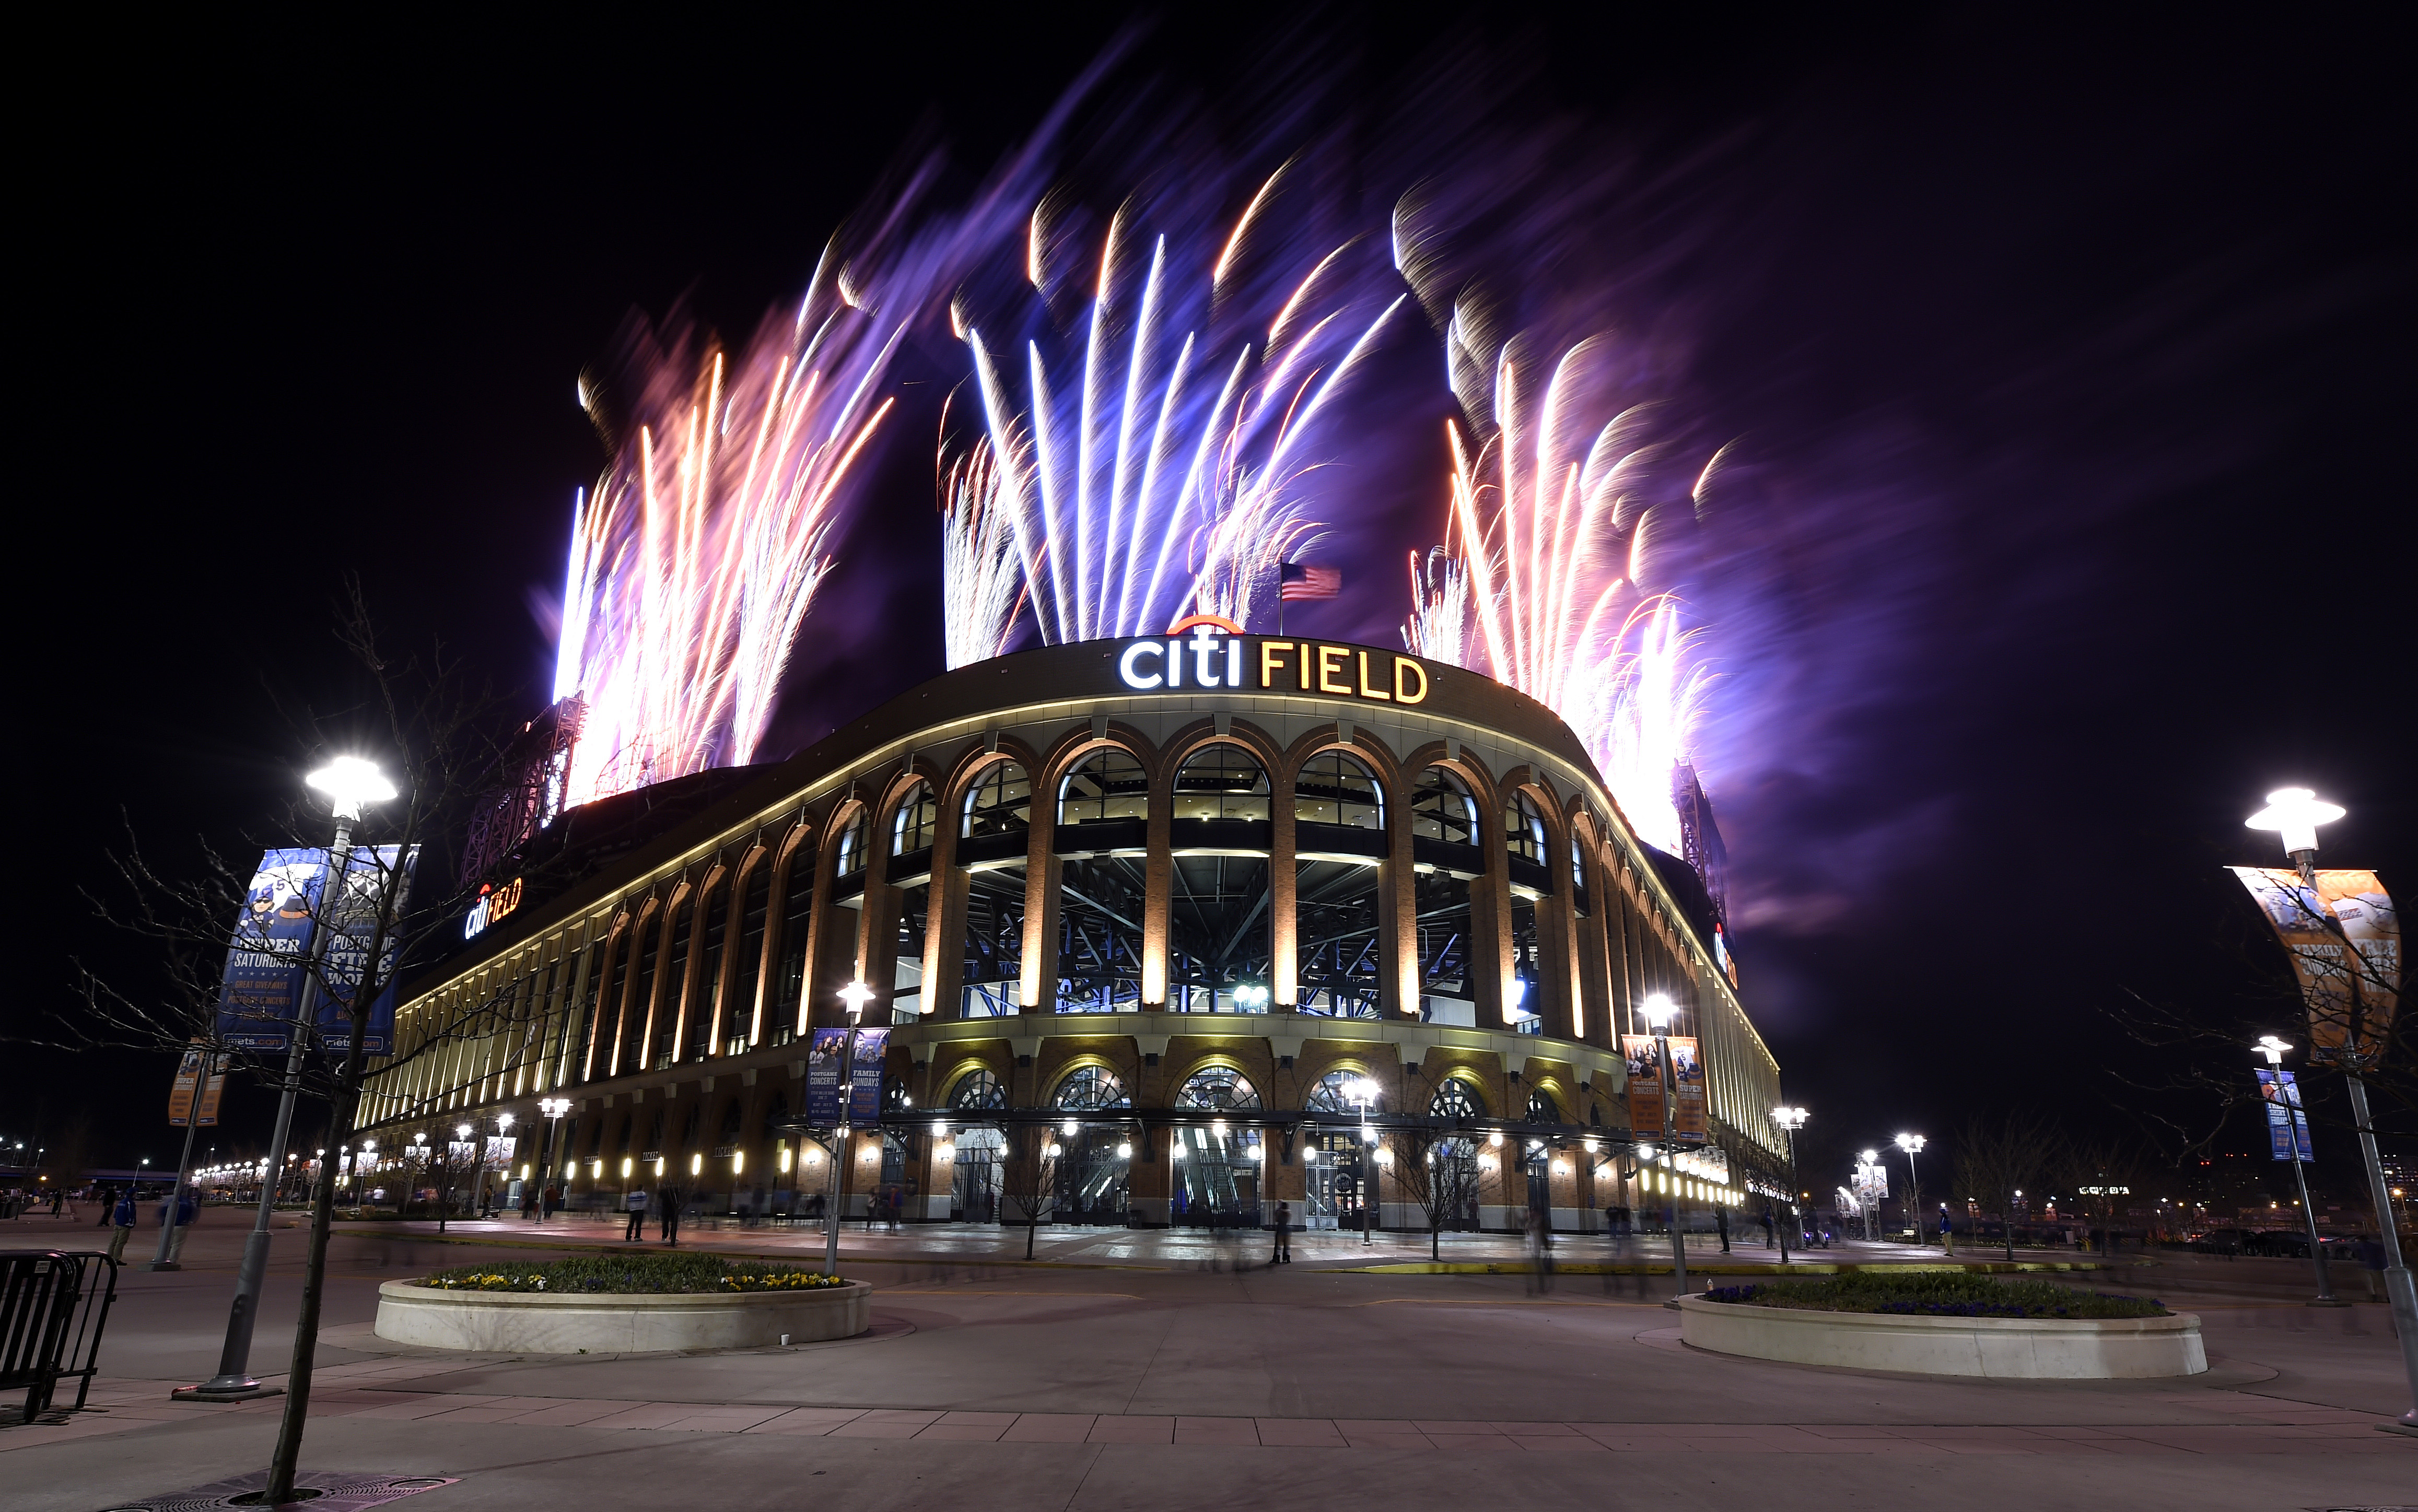 Fireworks soar over Citi Field on Fireworks Night after the New York Mets defeated the Miami Marlins 5-4 in a baseball game on Saturday, April 18, 2015, in New York. (AP Photo/Kathy Kmonicek)